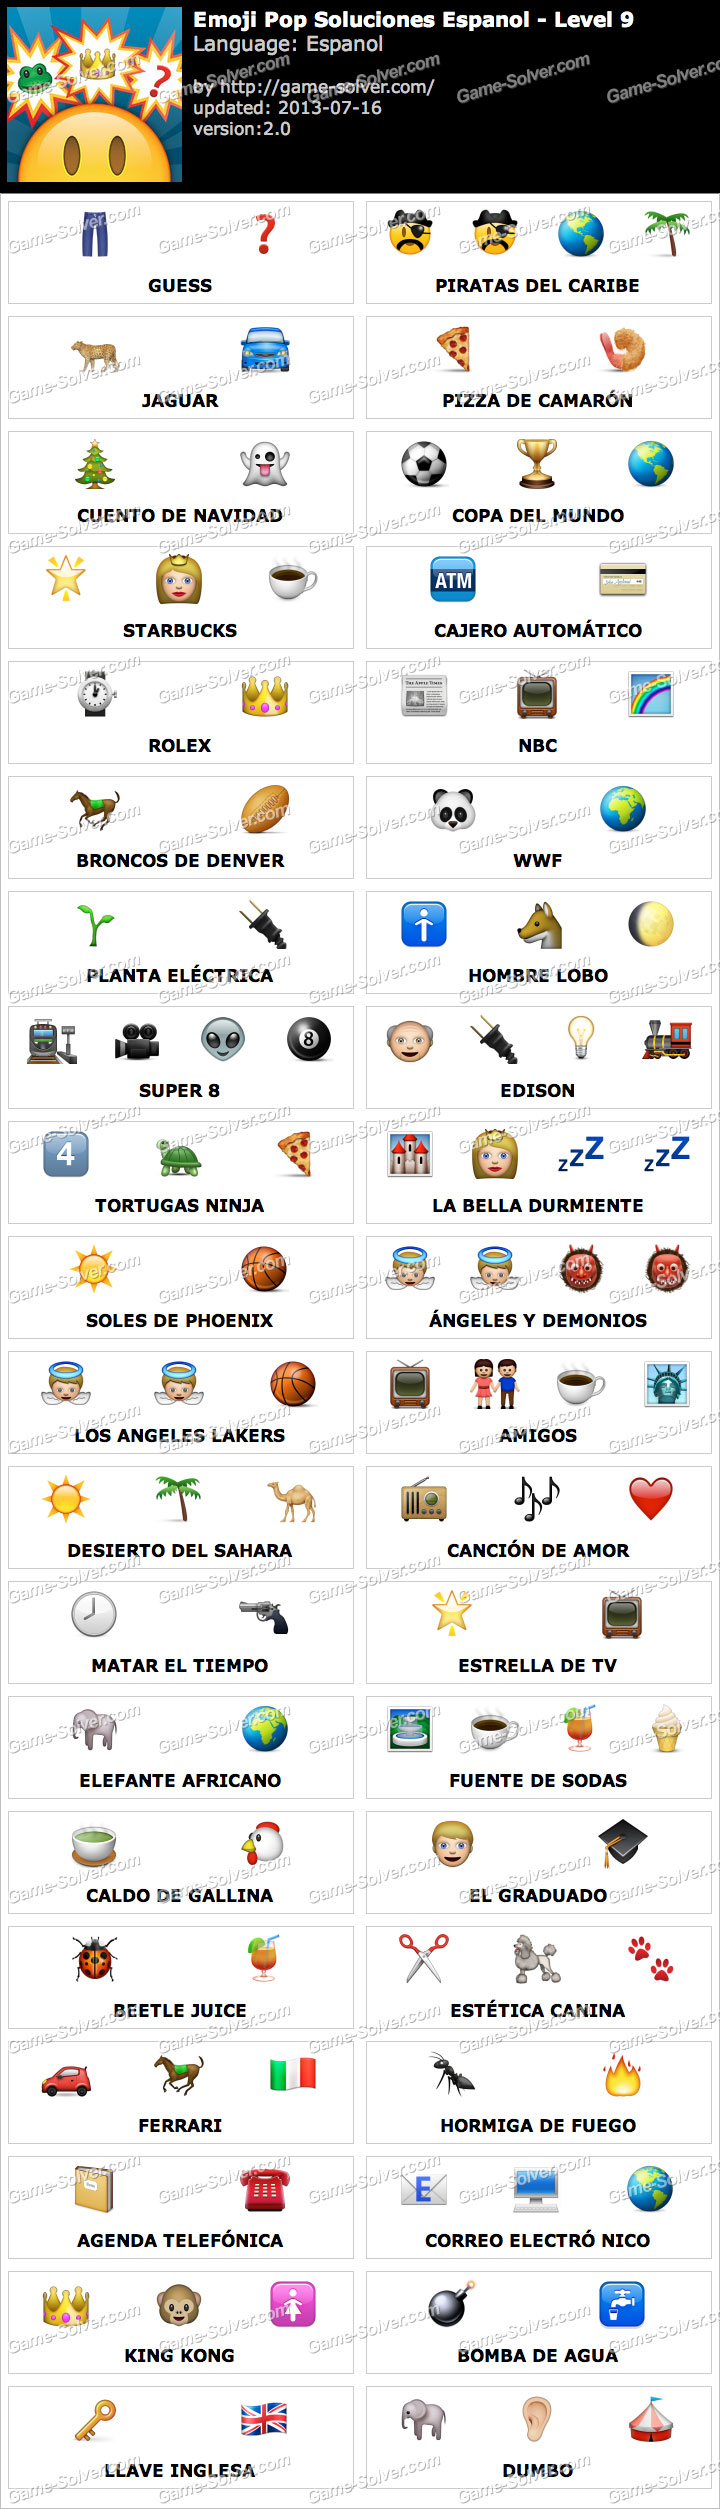 Emoji Pop Nivel 9